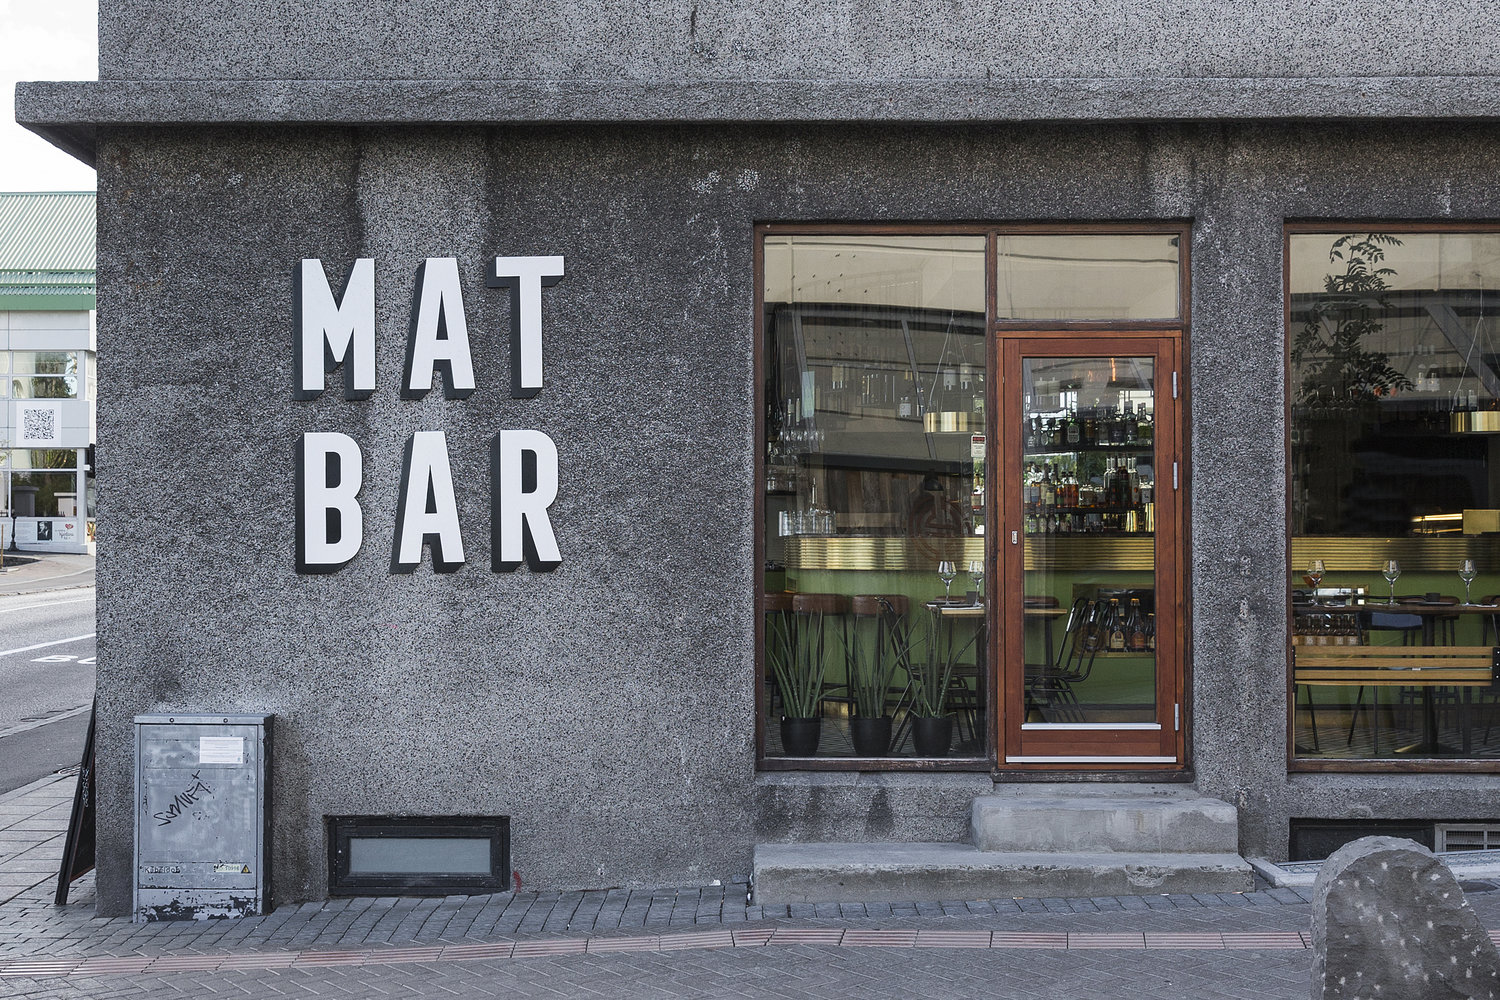 mat bar by haf studio Mat Bar by Haf Studio Features 1960's-Inspired Design Mat Bar by Haf Studio Features 1960s Inspired Design 8